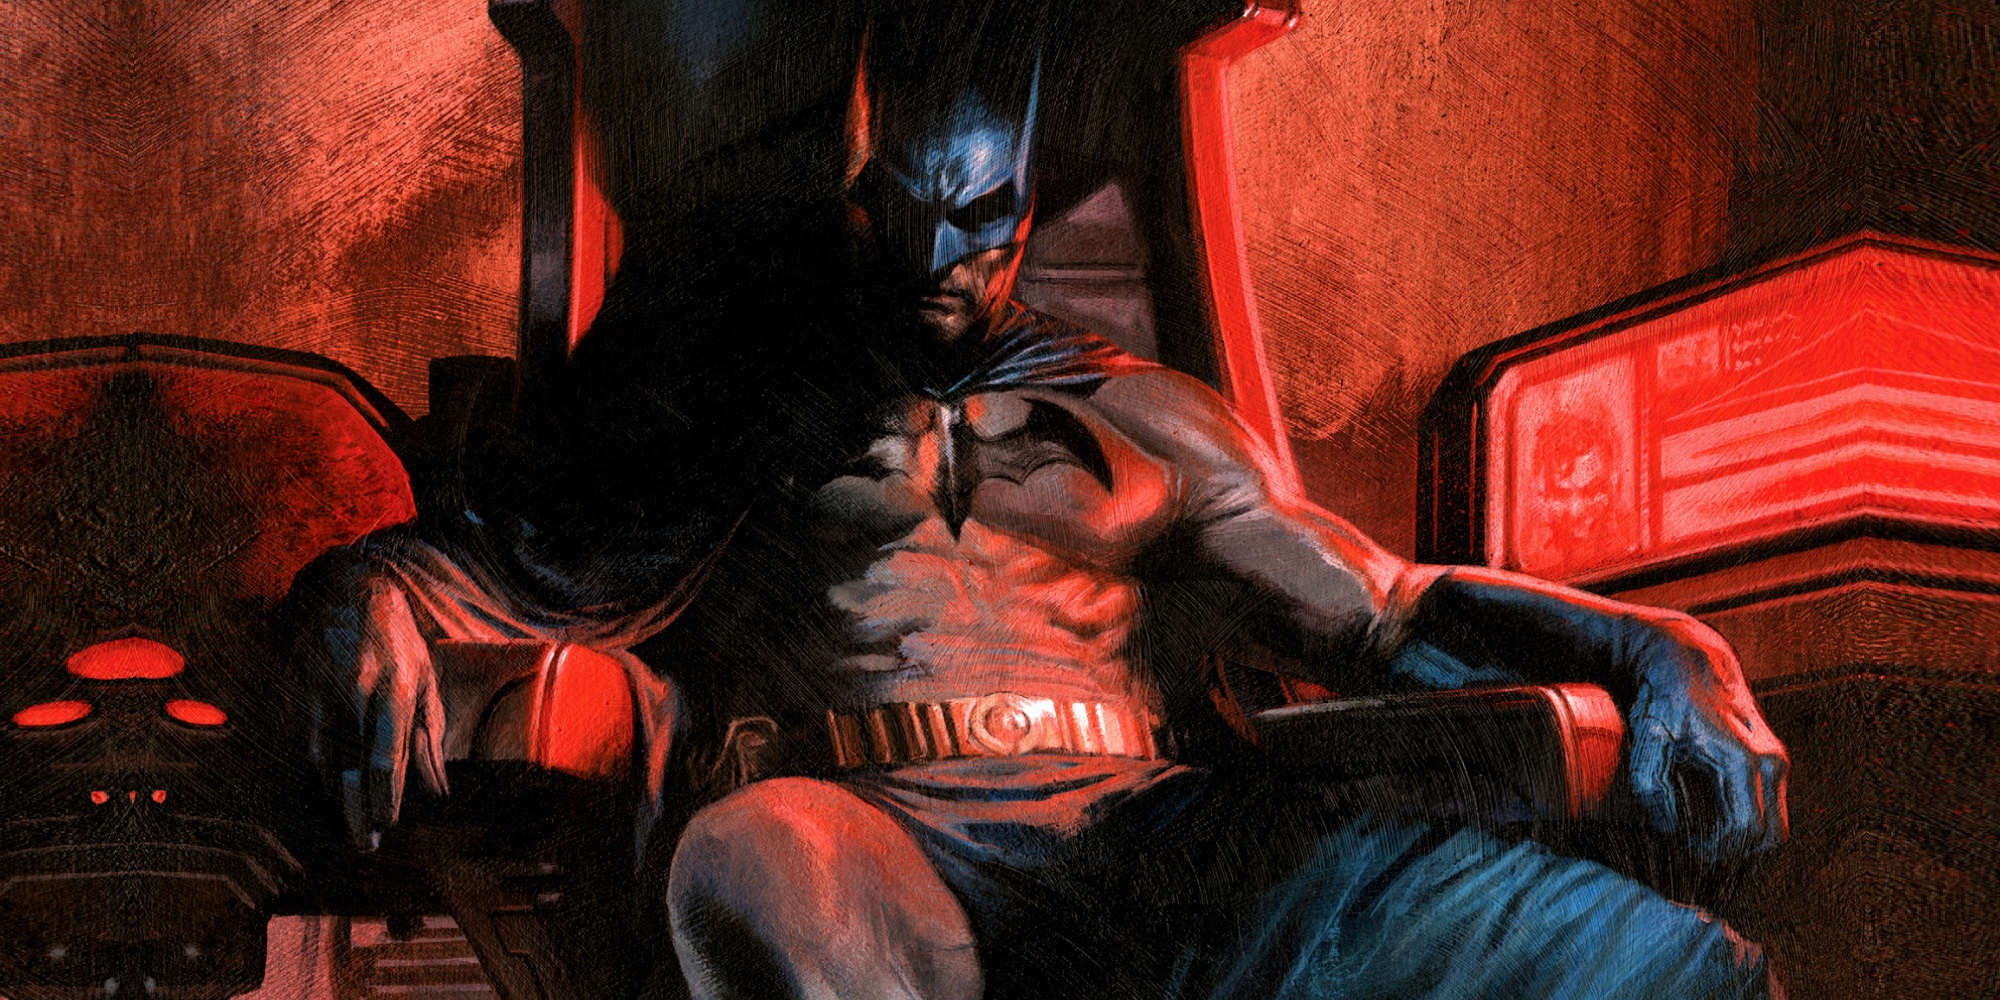 Batman sitting in a chair, lit by red lights.